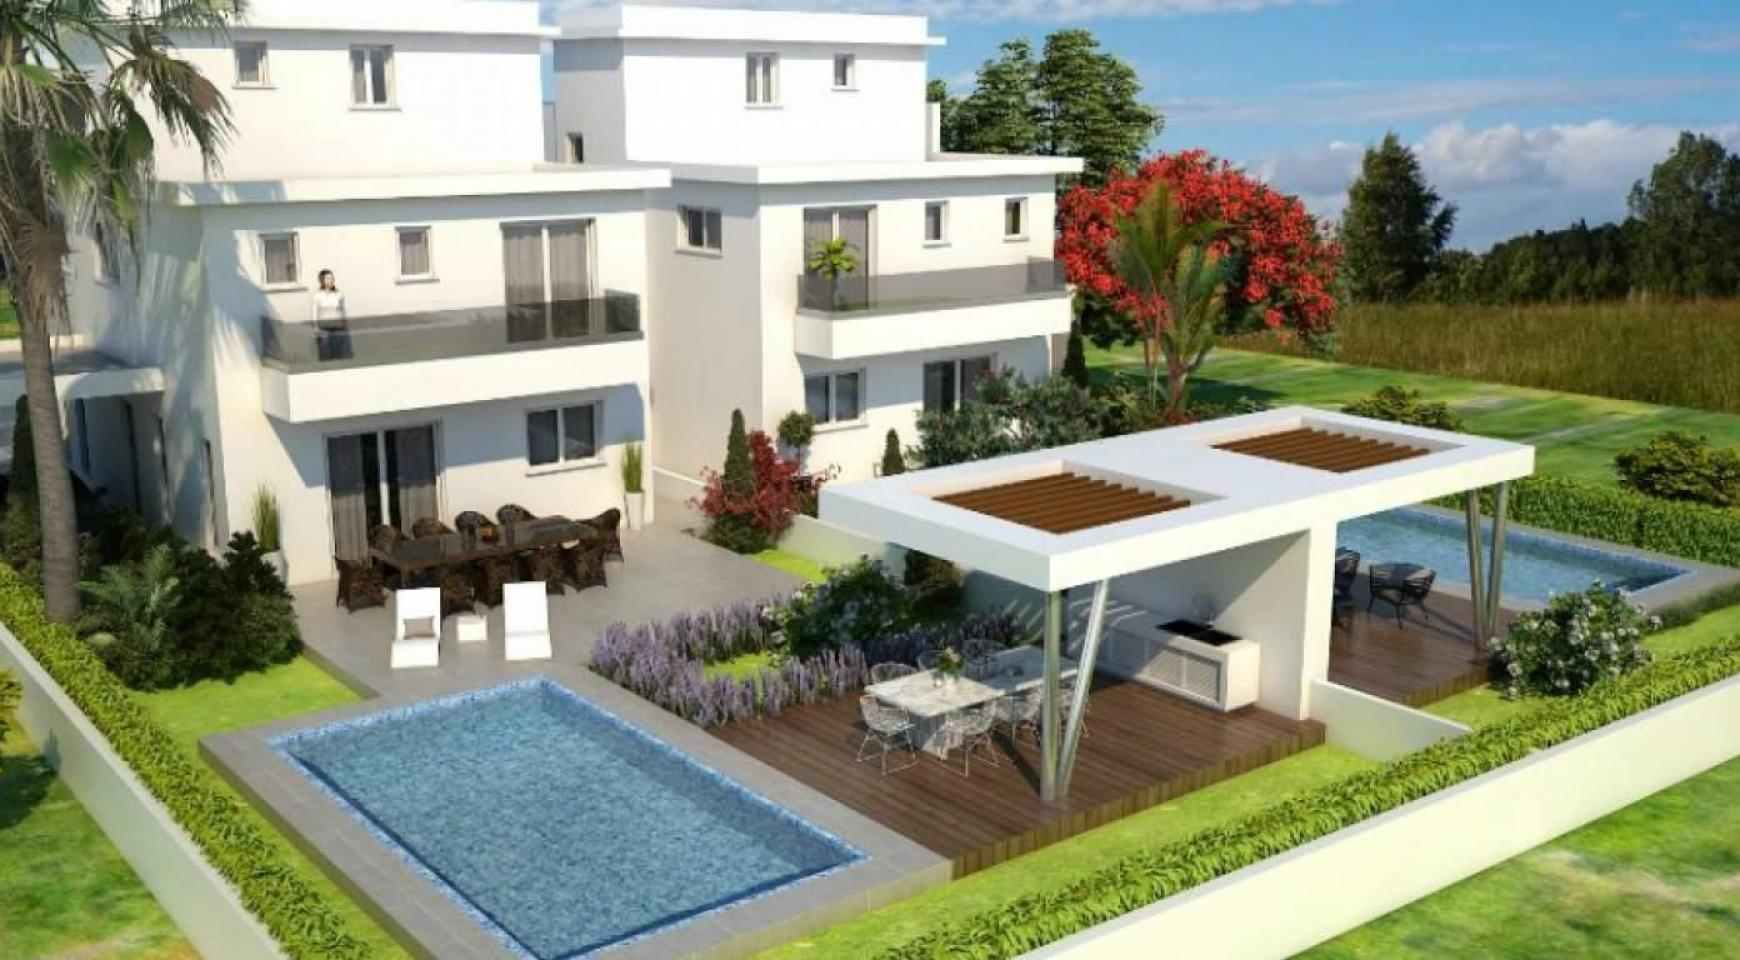 Luxury 4 Bedroom House In Oroklini Area - 7